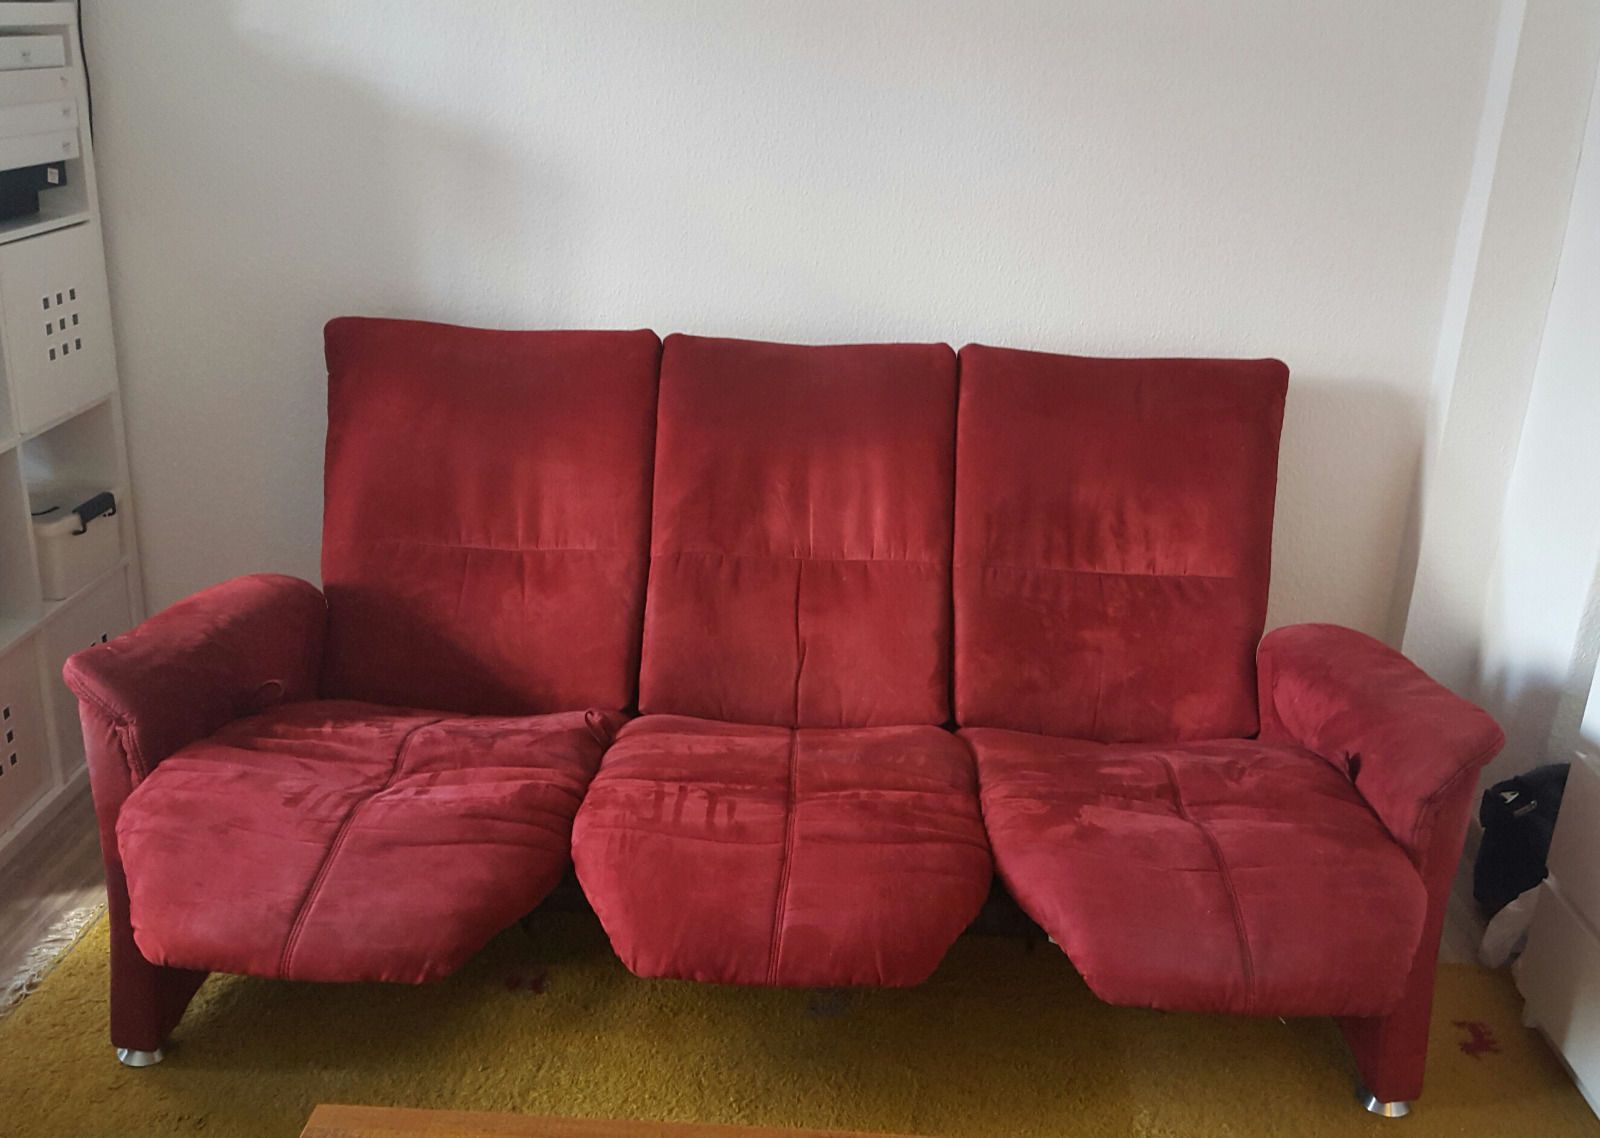 himolla sofa dreisitzer funktionssofa bordeaux rot ebay. Black Bedroom Furniture Sets. Home Design Ideas